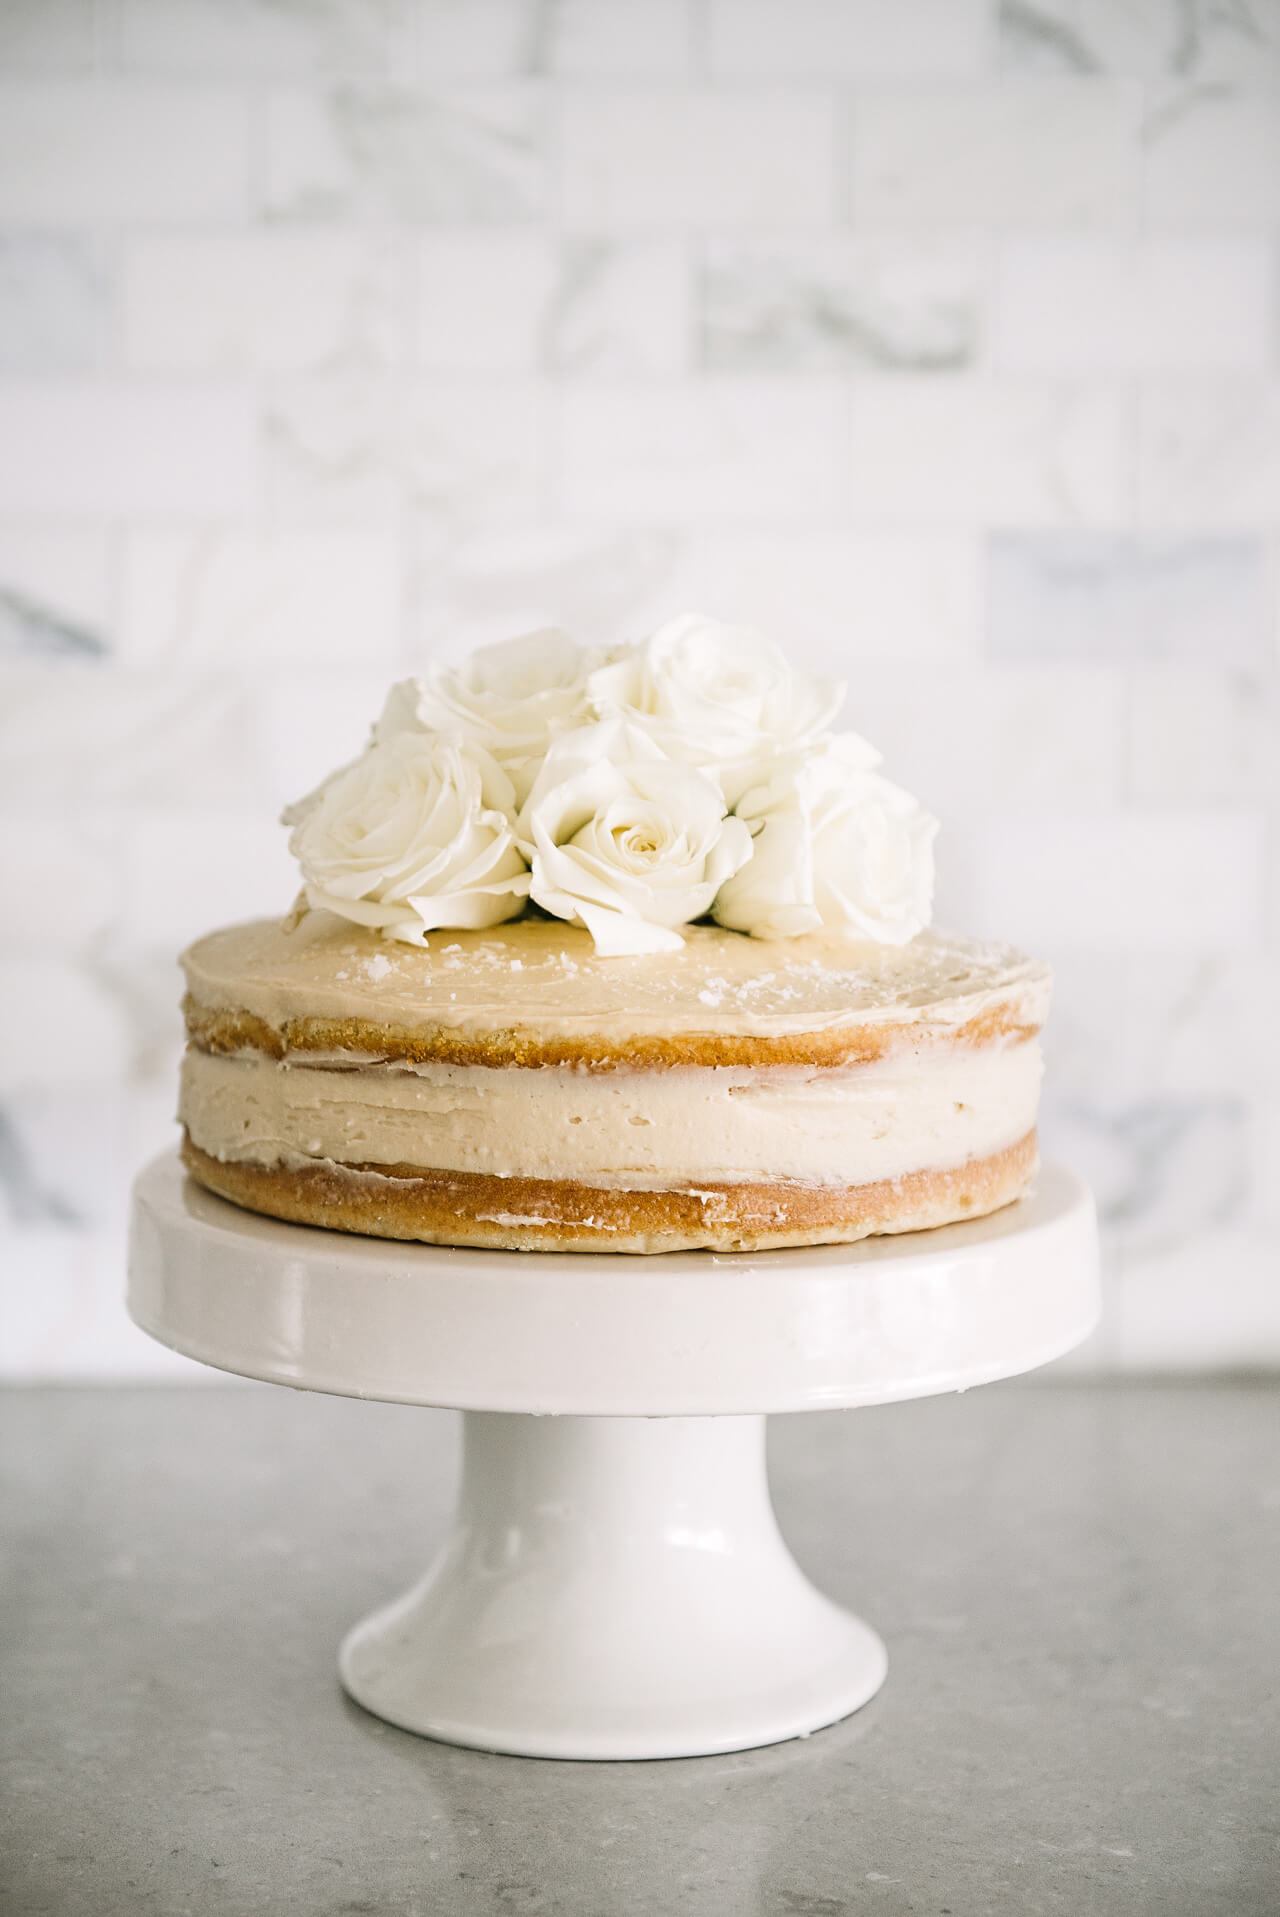 Sweet and Salty Vanilla Bean Cake with Caramel Frosting recipe